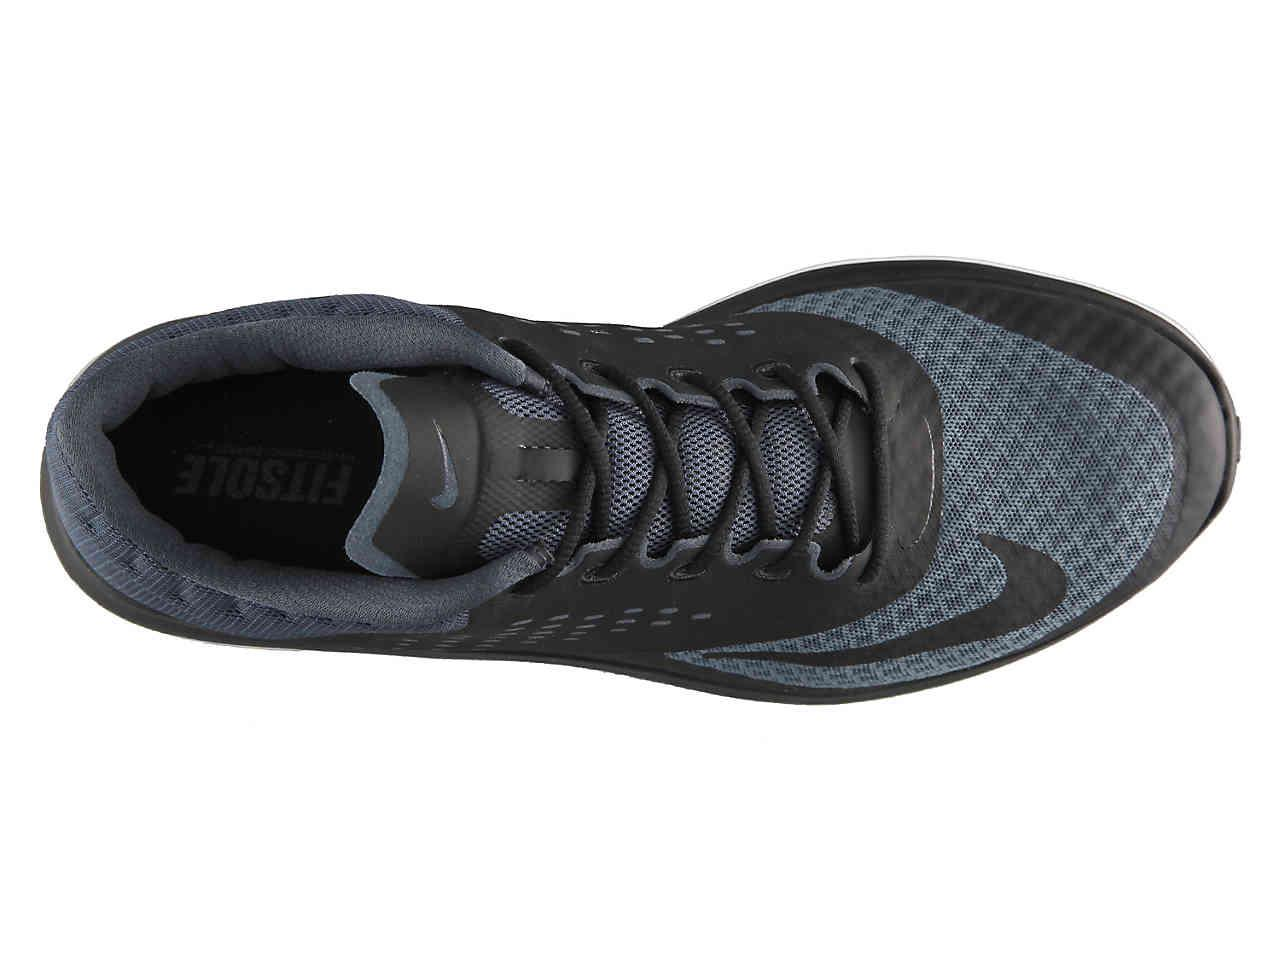 6f5f5a879b1bc nike-BlackGrey-Fs-Lite-Run-2-Lightweight-Running-Shoe.jpeg